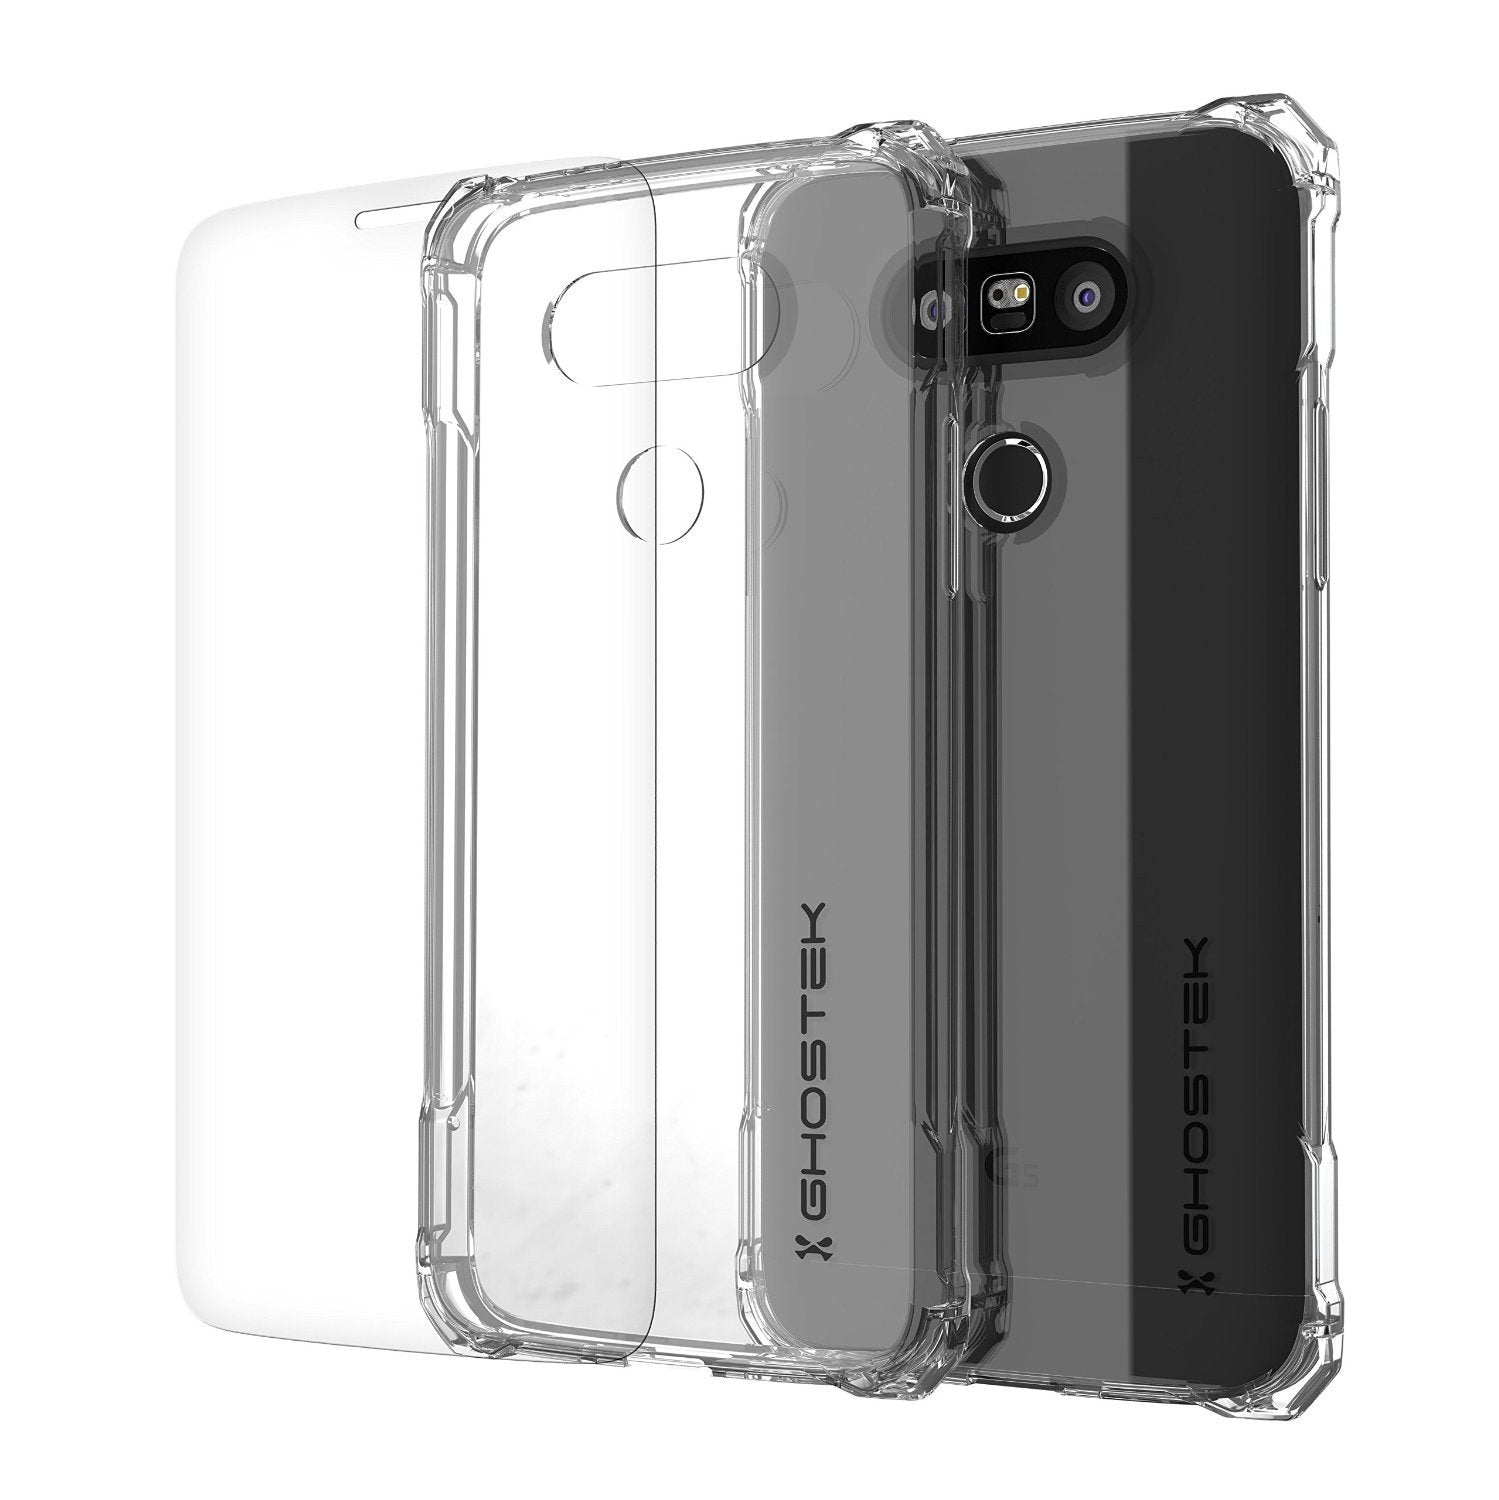 LG G5 Case, Ghostek® Clear Covert Premium Slim Hybrid Protective Cover | Lifetime Warranty Exchange - PunkCase NZ